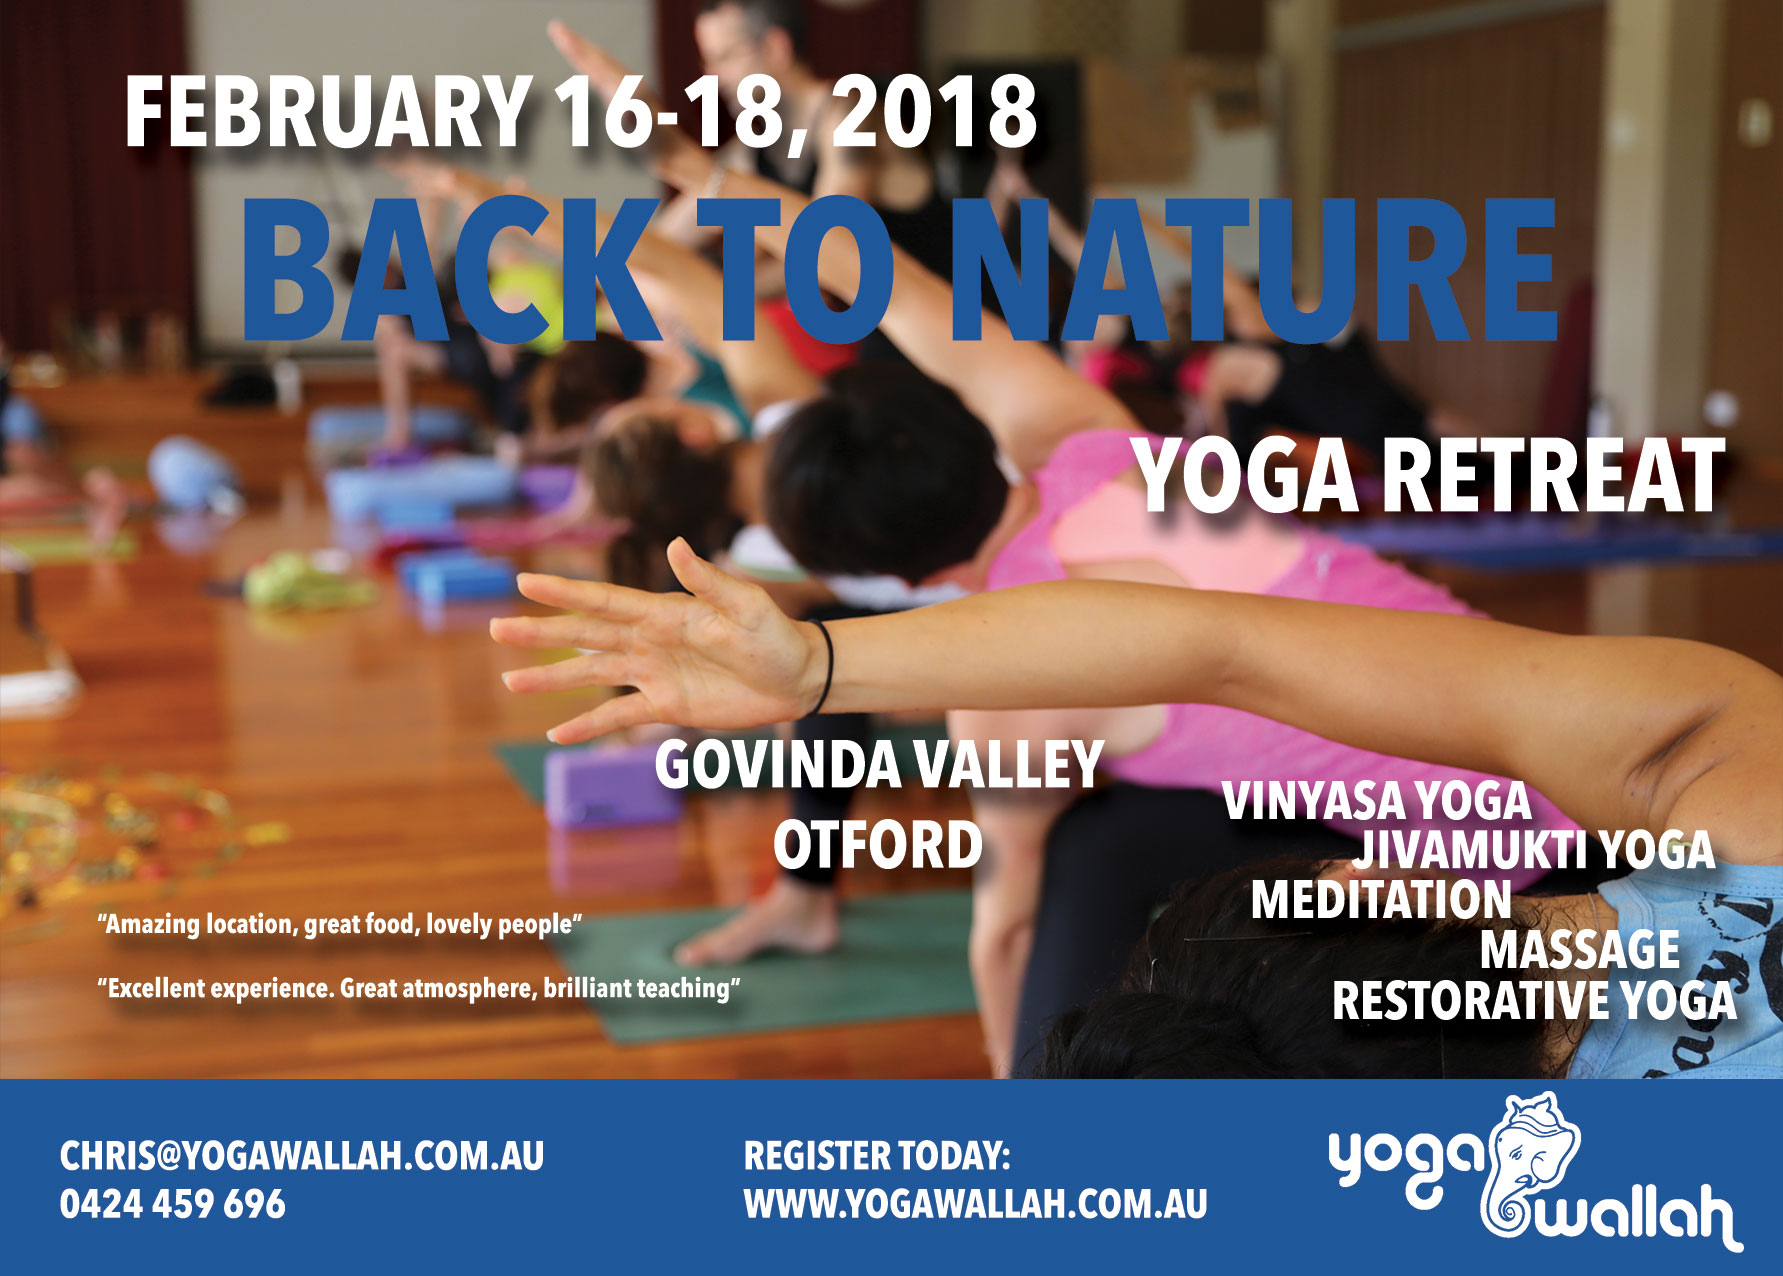 4th Back to Nature Yoga Retreat Feb 16-18, flyer front page